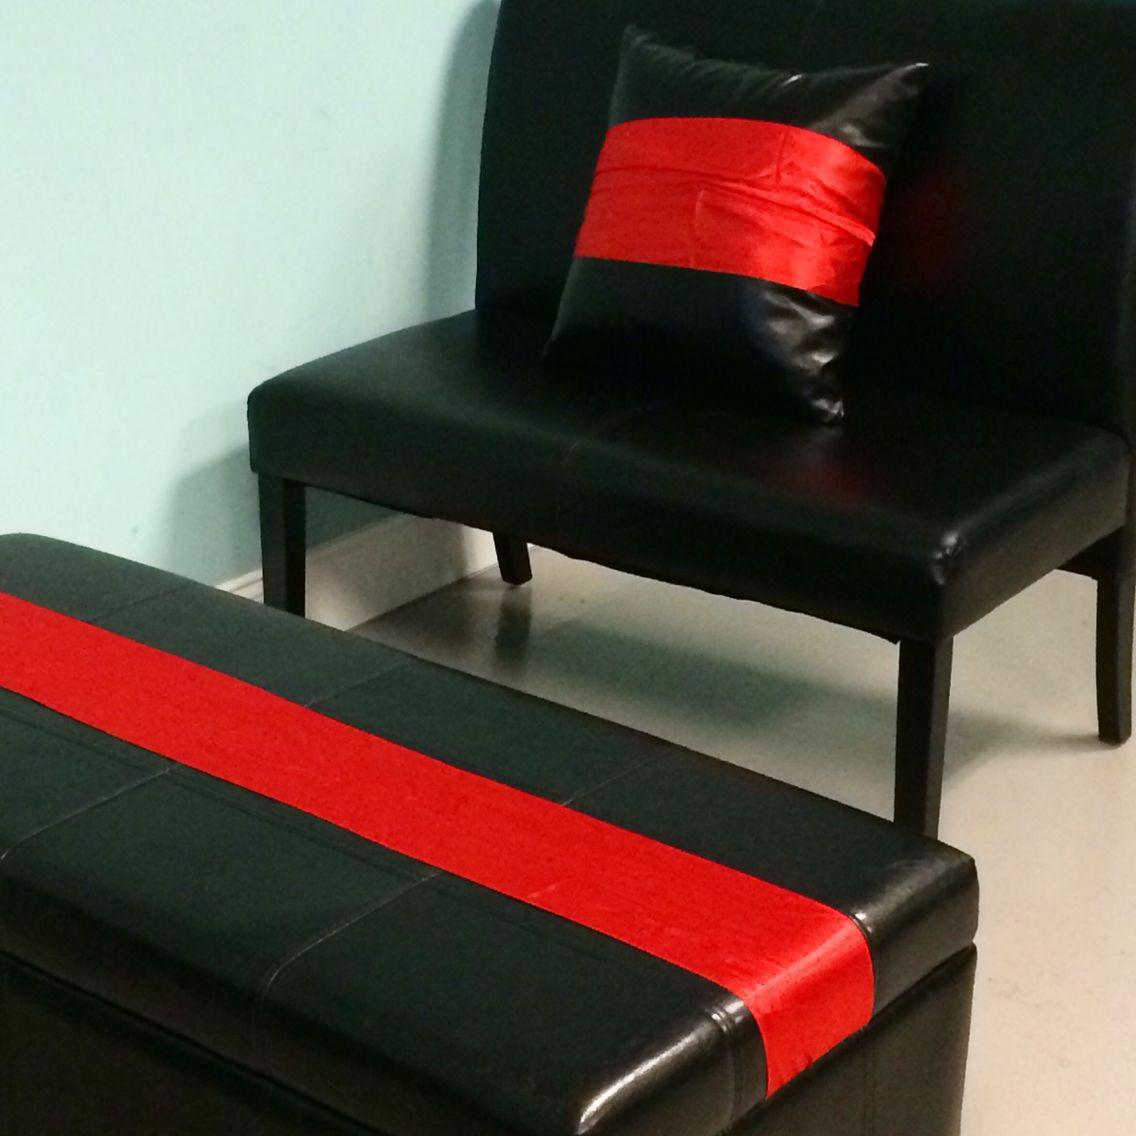 Wrap fabric around a basic furniture piece to being it to life.